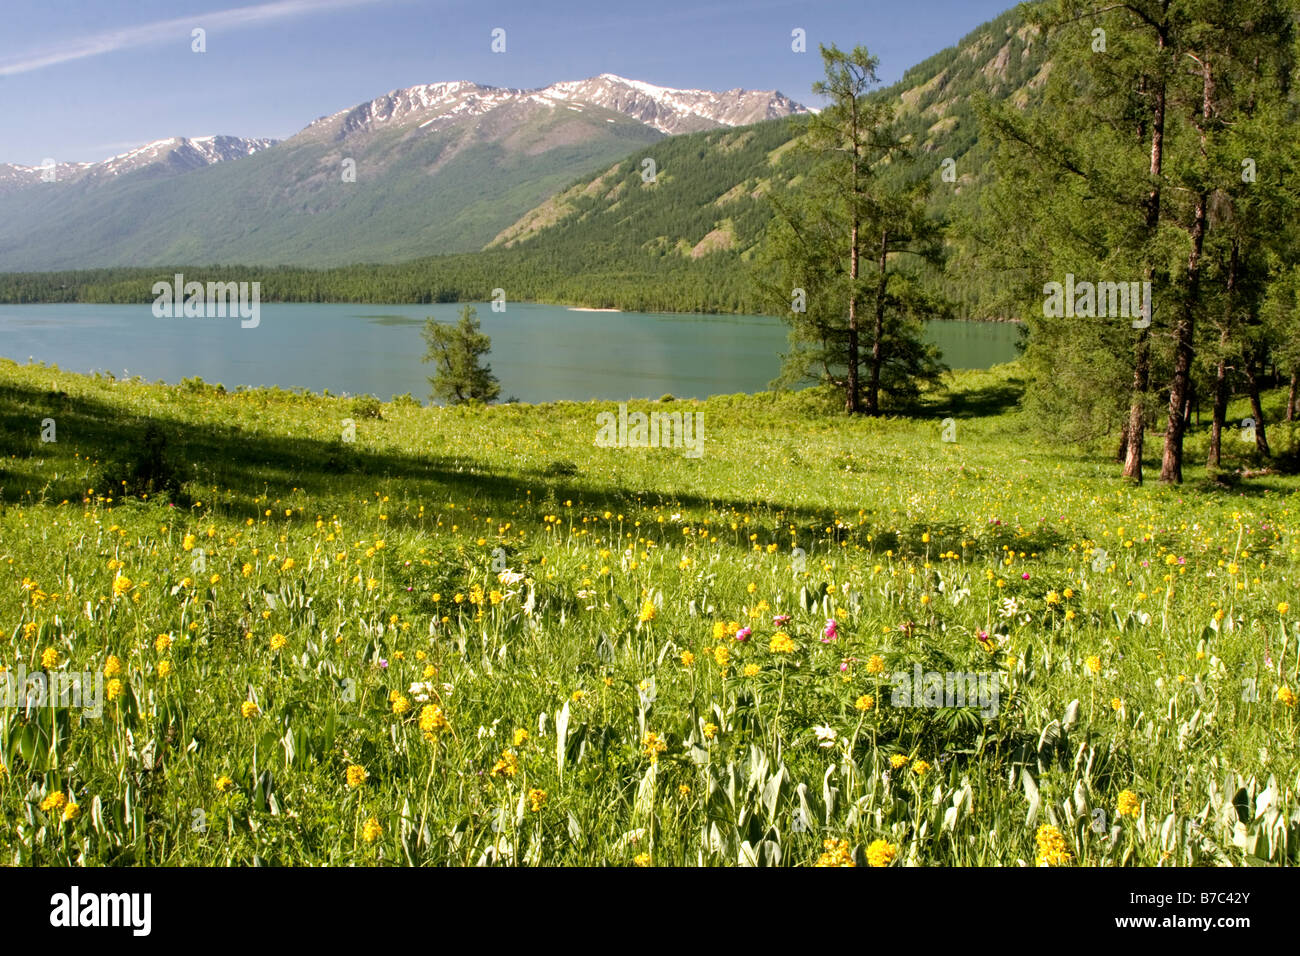 Kanas Lake in the Altay Mountains in Kanas national park in Xinjiang in China. - Stock Image